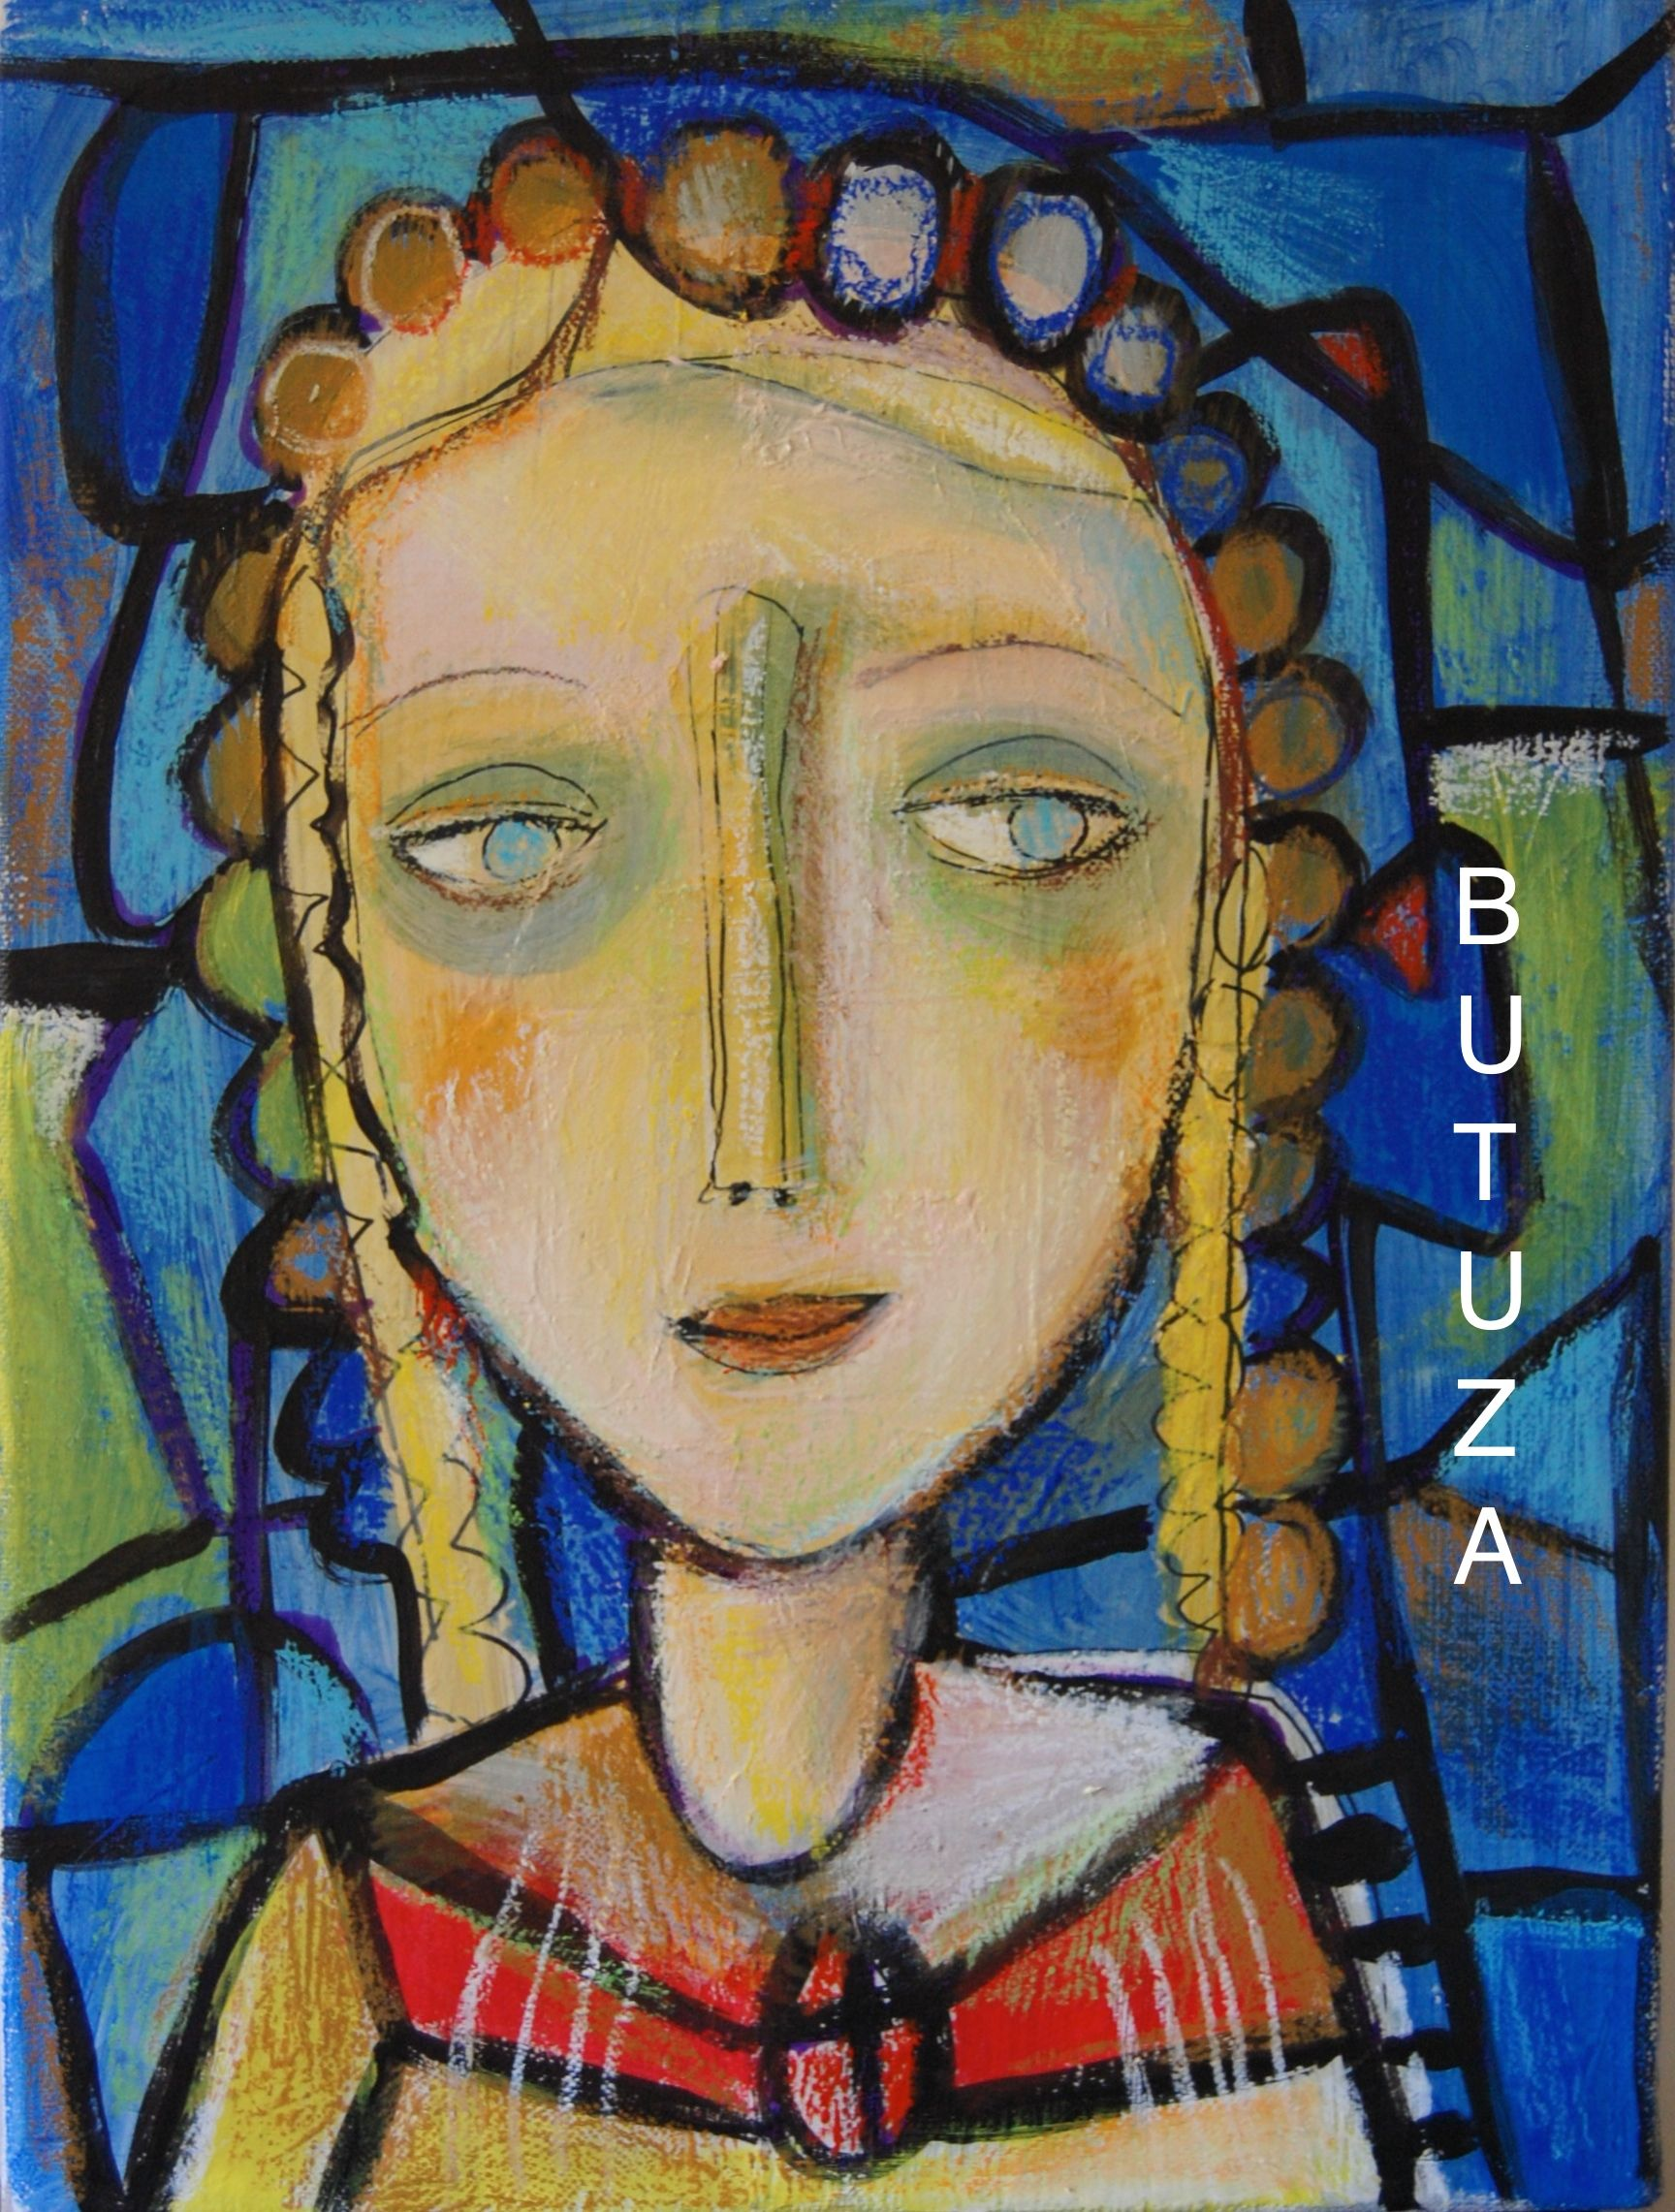 Swiss Artist Painter   Painted by Cathy Butuza